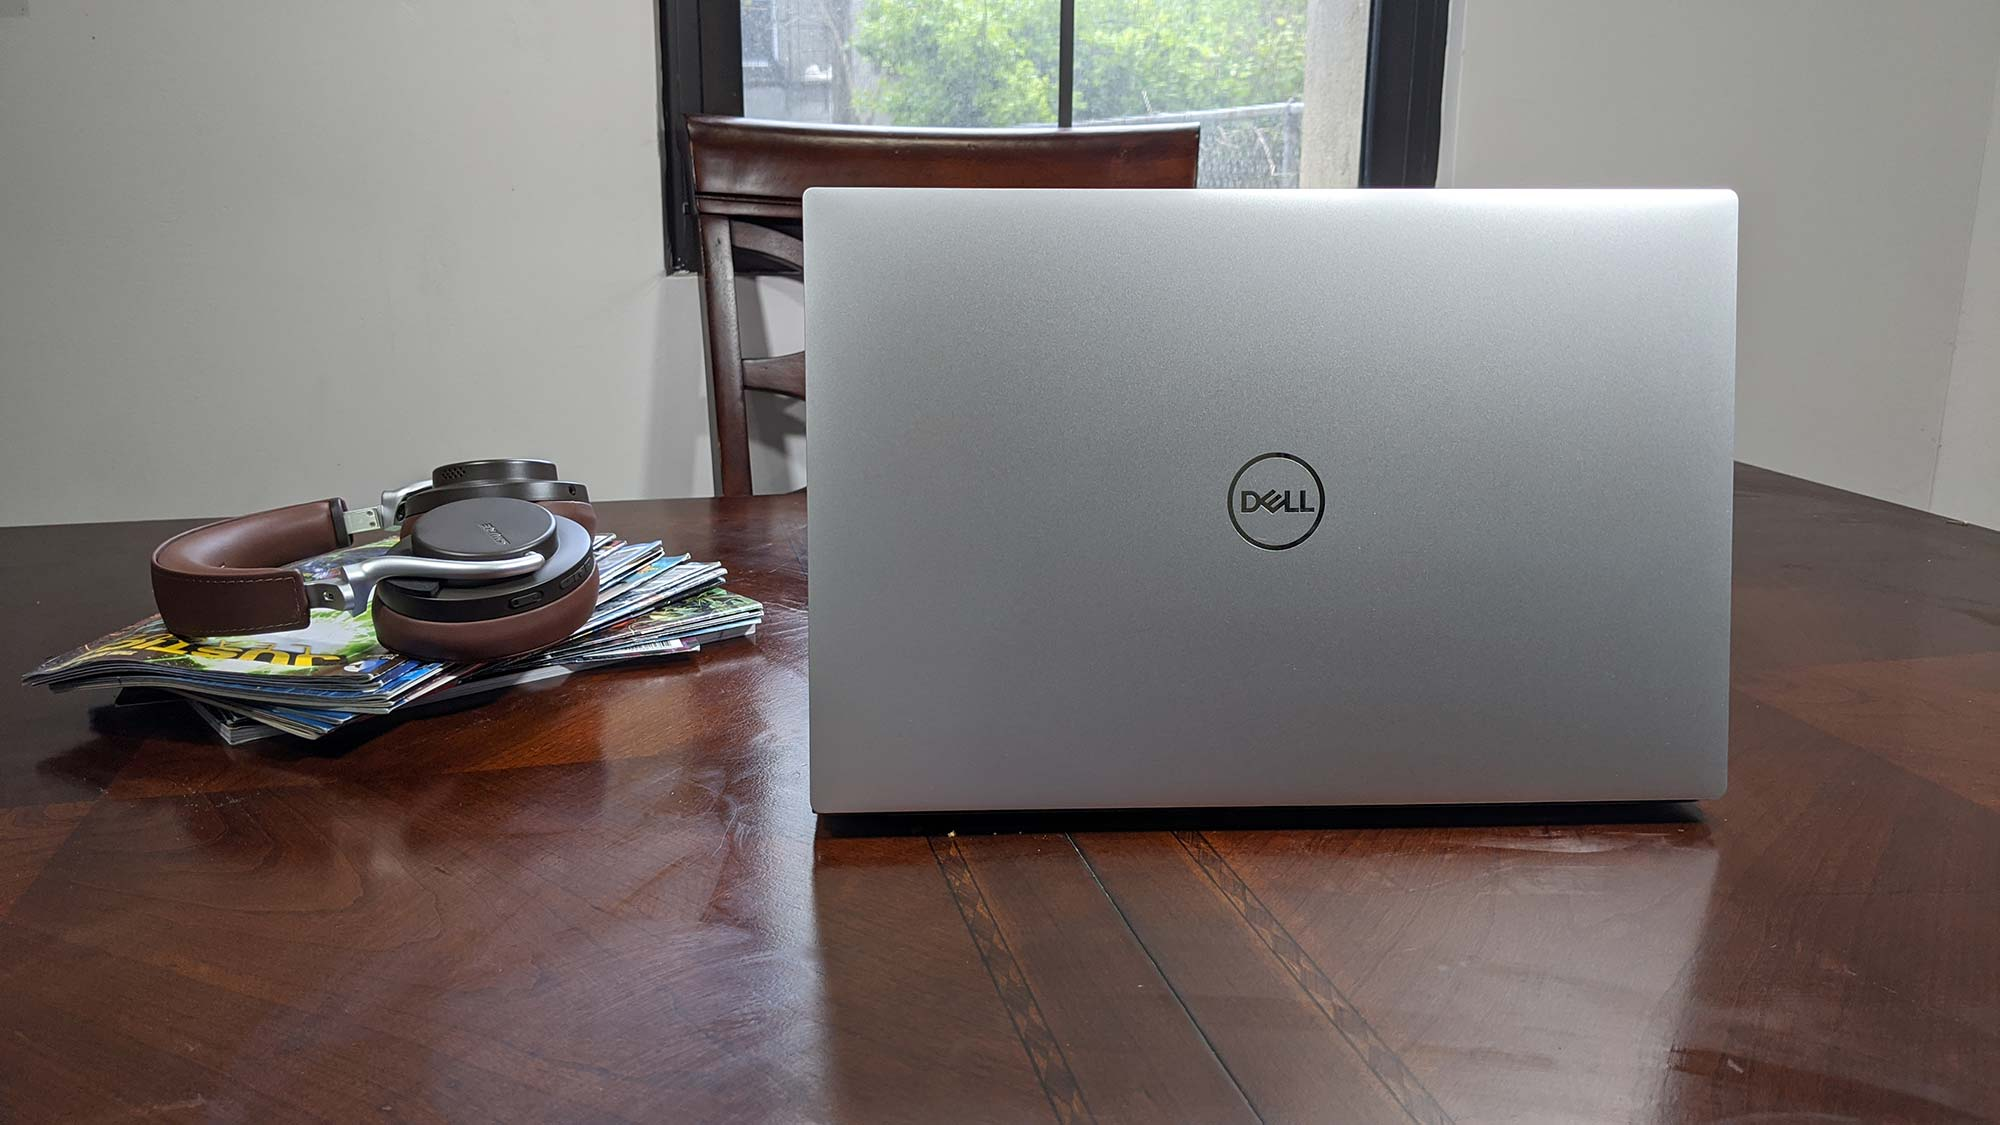 Dell XPS 15 (2020) review